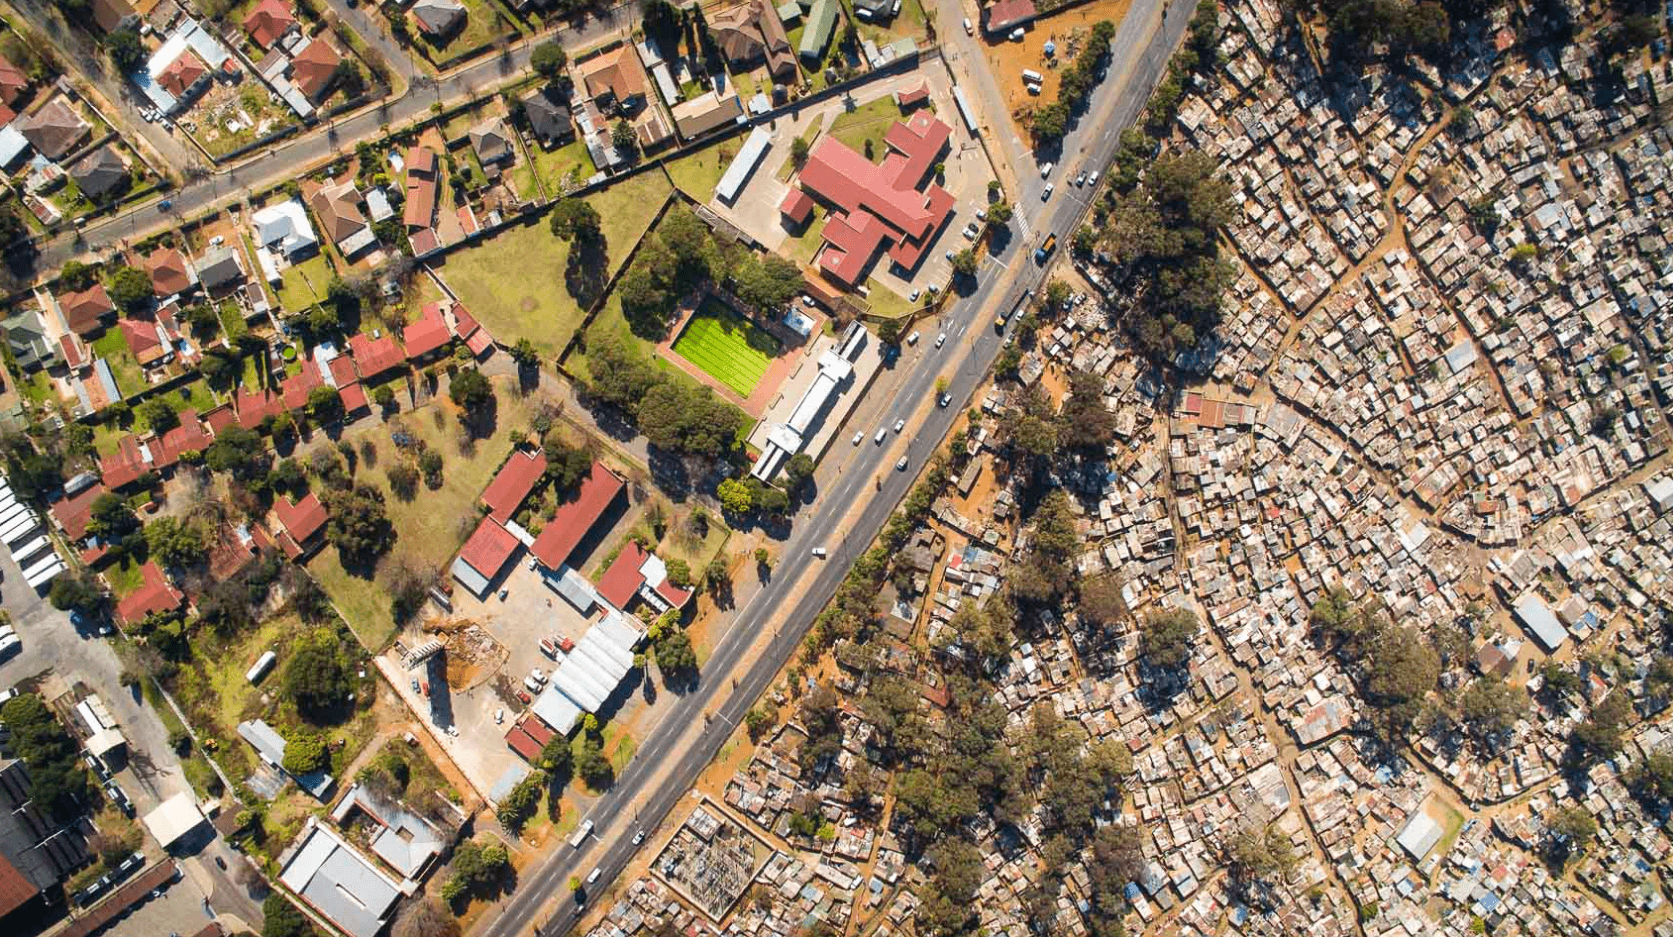 dramatic drone photos show a difference between the rich and the